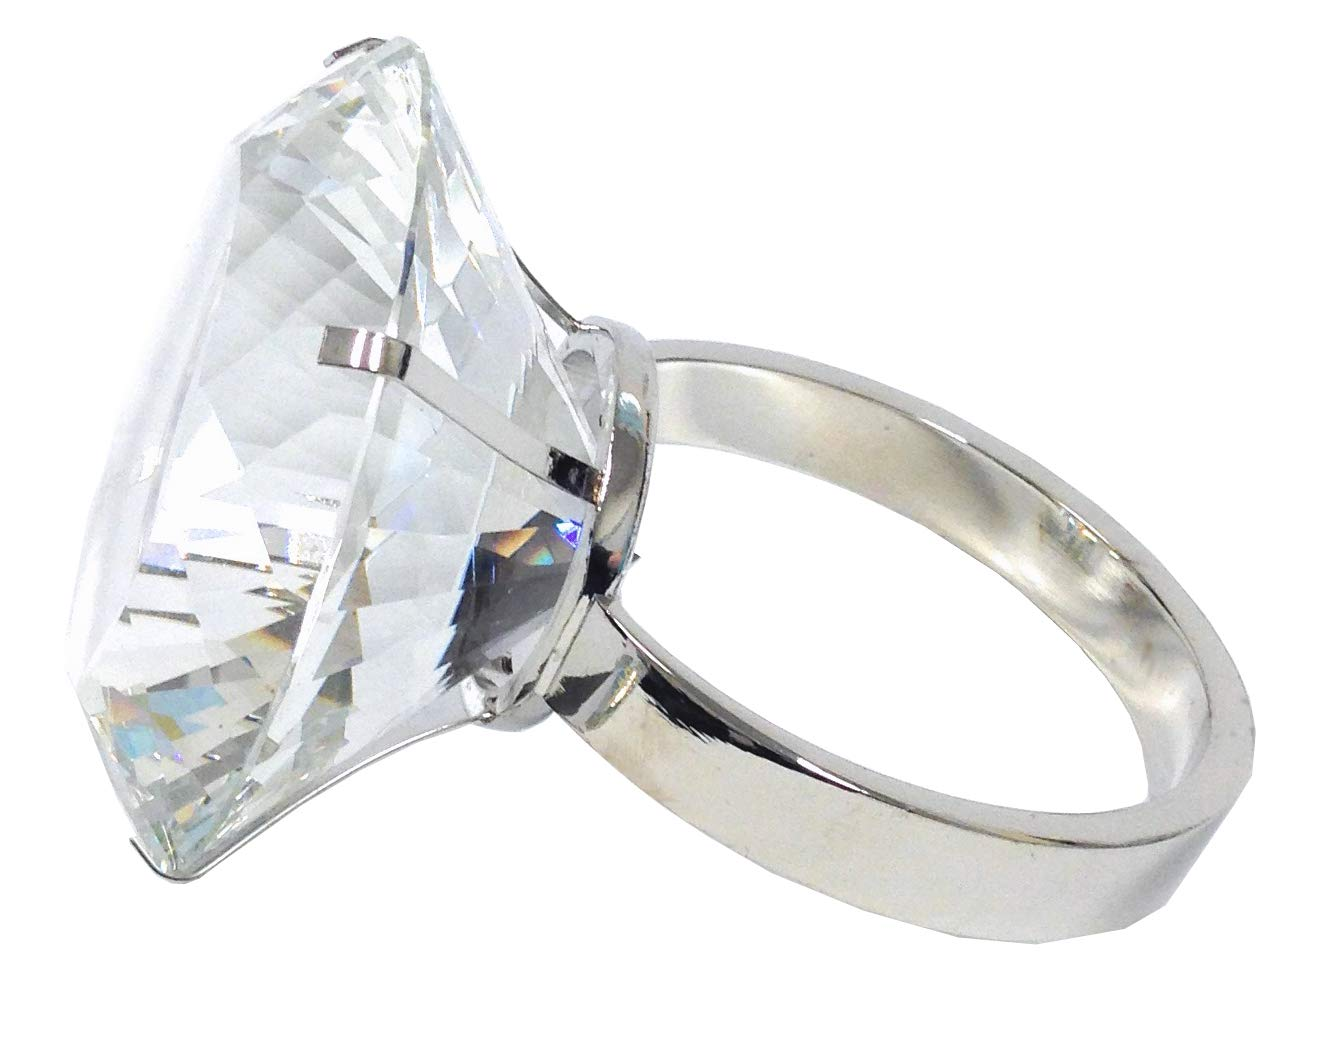 Amlong Crystal Large 3 inch Diameter Crystal Diamond Ring Paperweight by Amlong Crystal